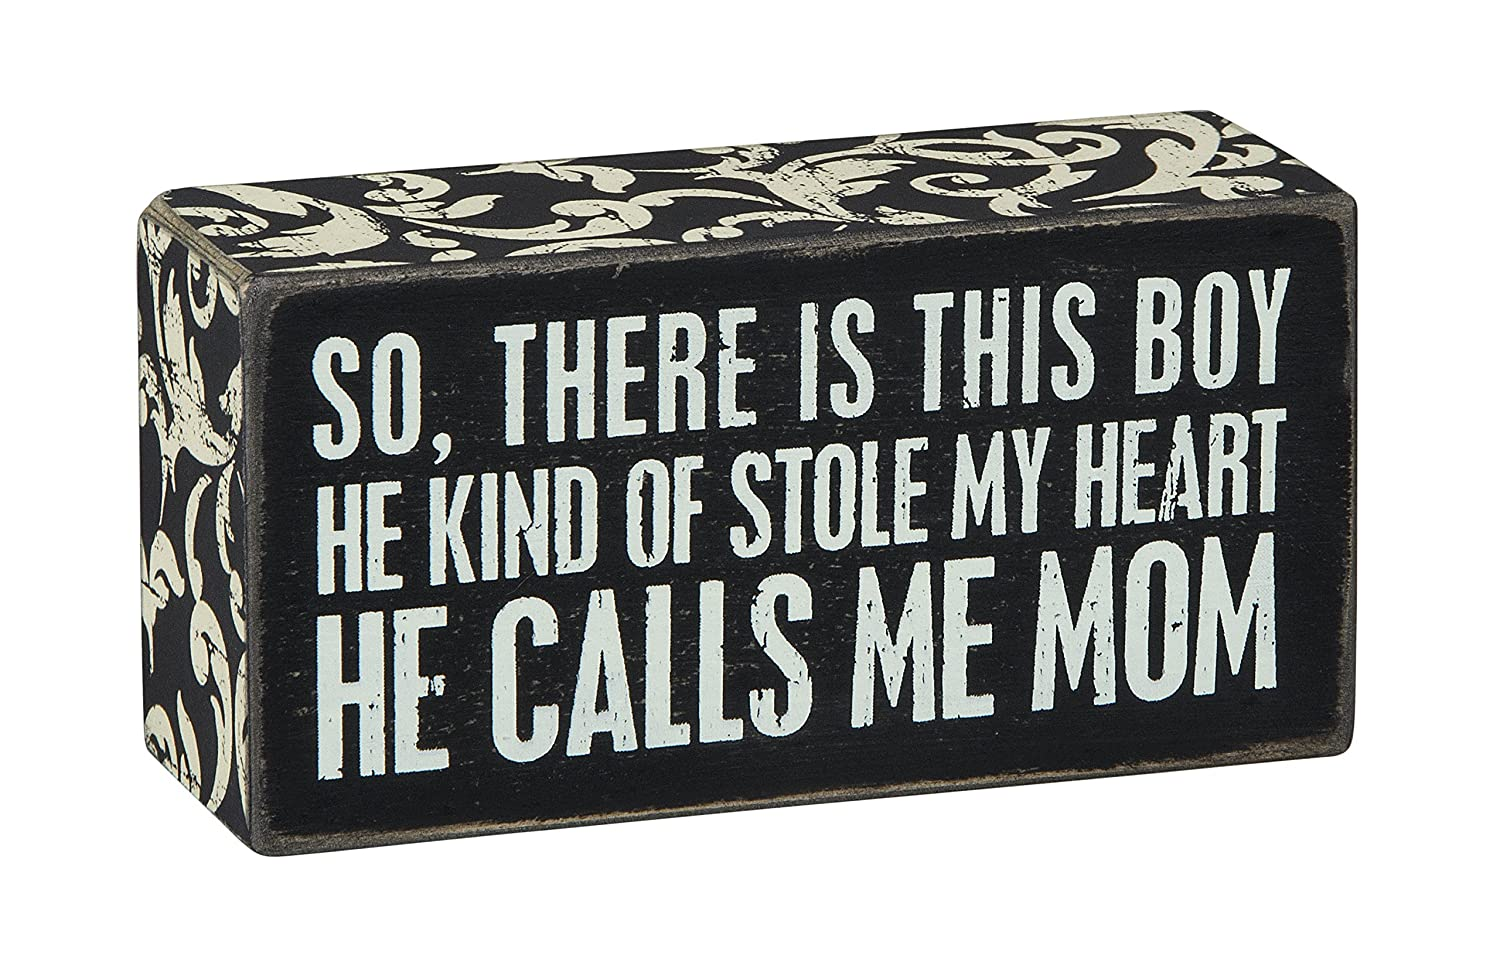 Primitives by Kathy Floral Trimmed Box Sign, 5 x 2.5-Inches, Calls Me Mom